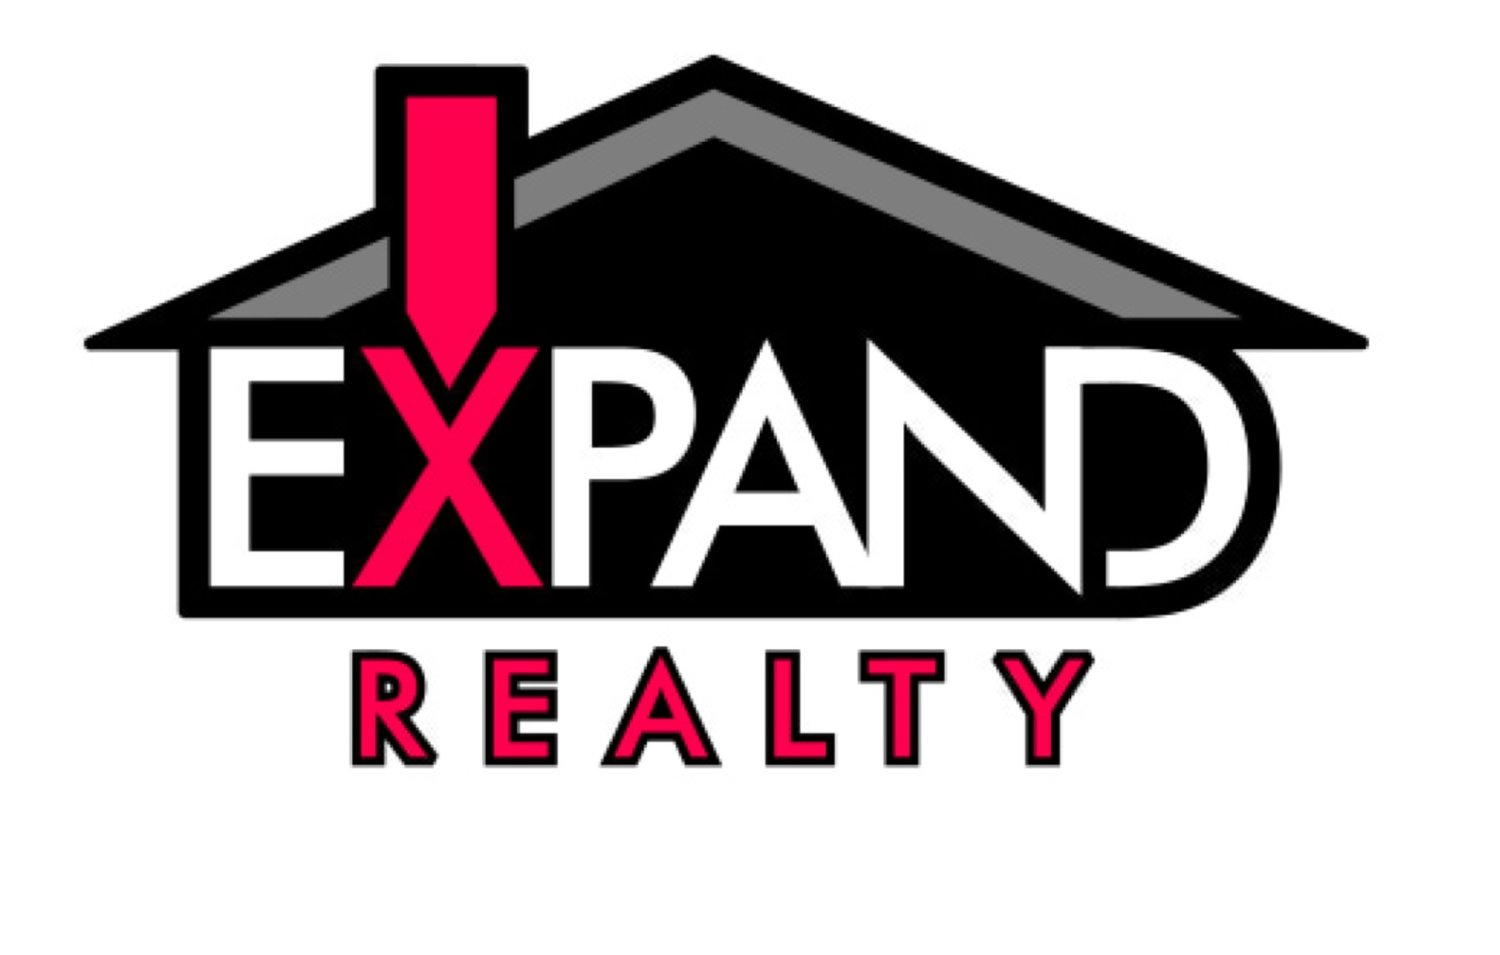 Expand Realty